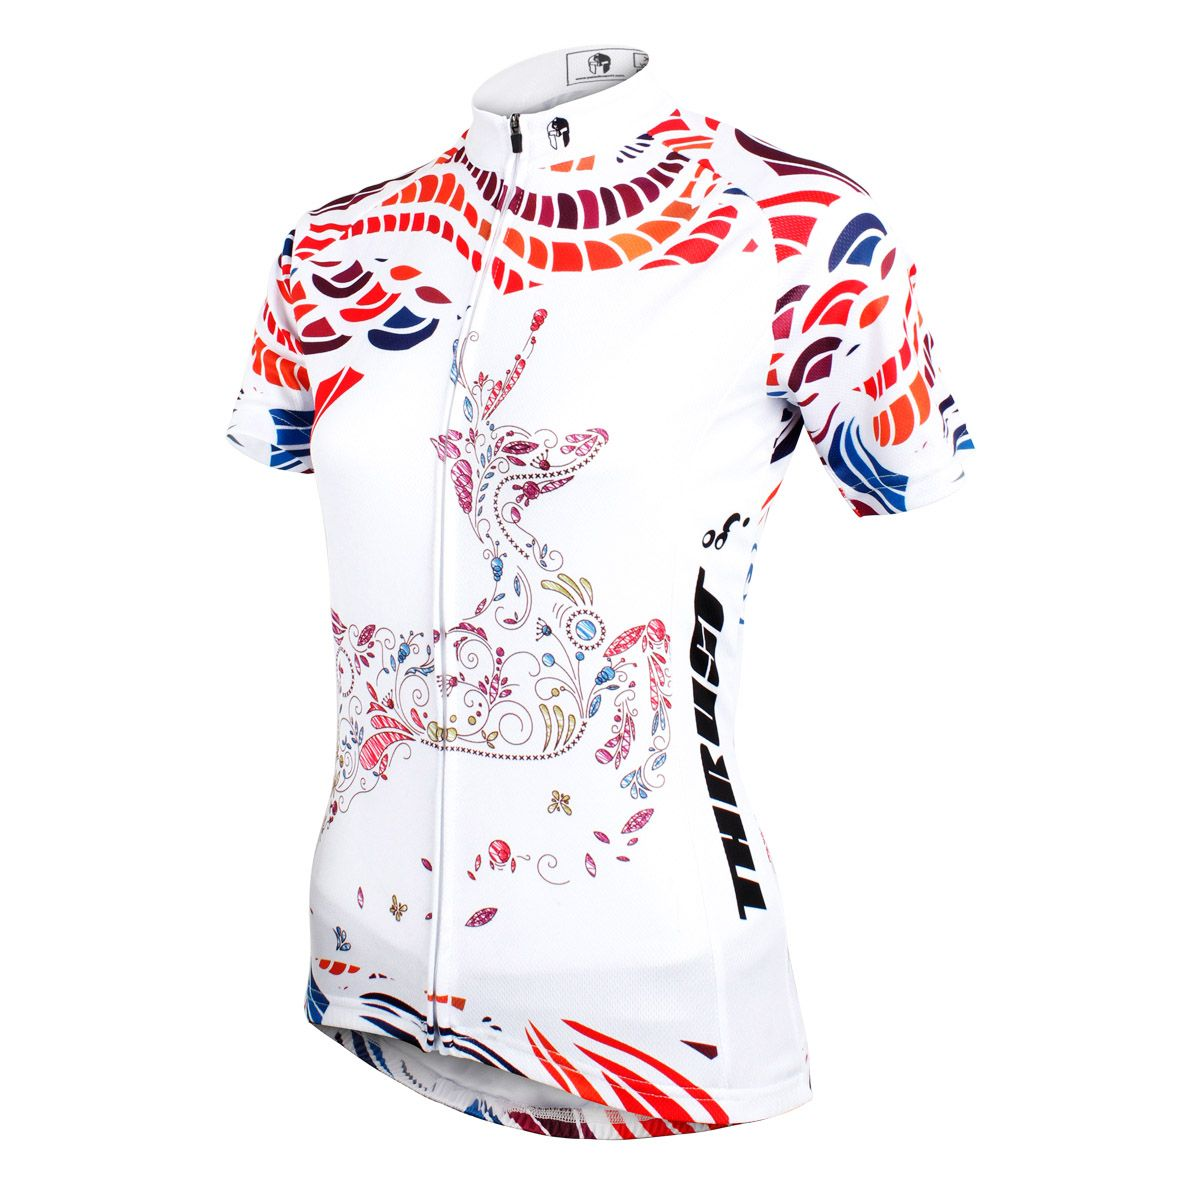 Cycling Apparel & Gear,cycling apparel brands,discount